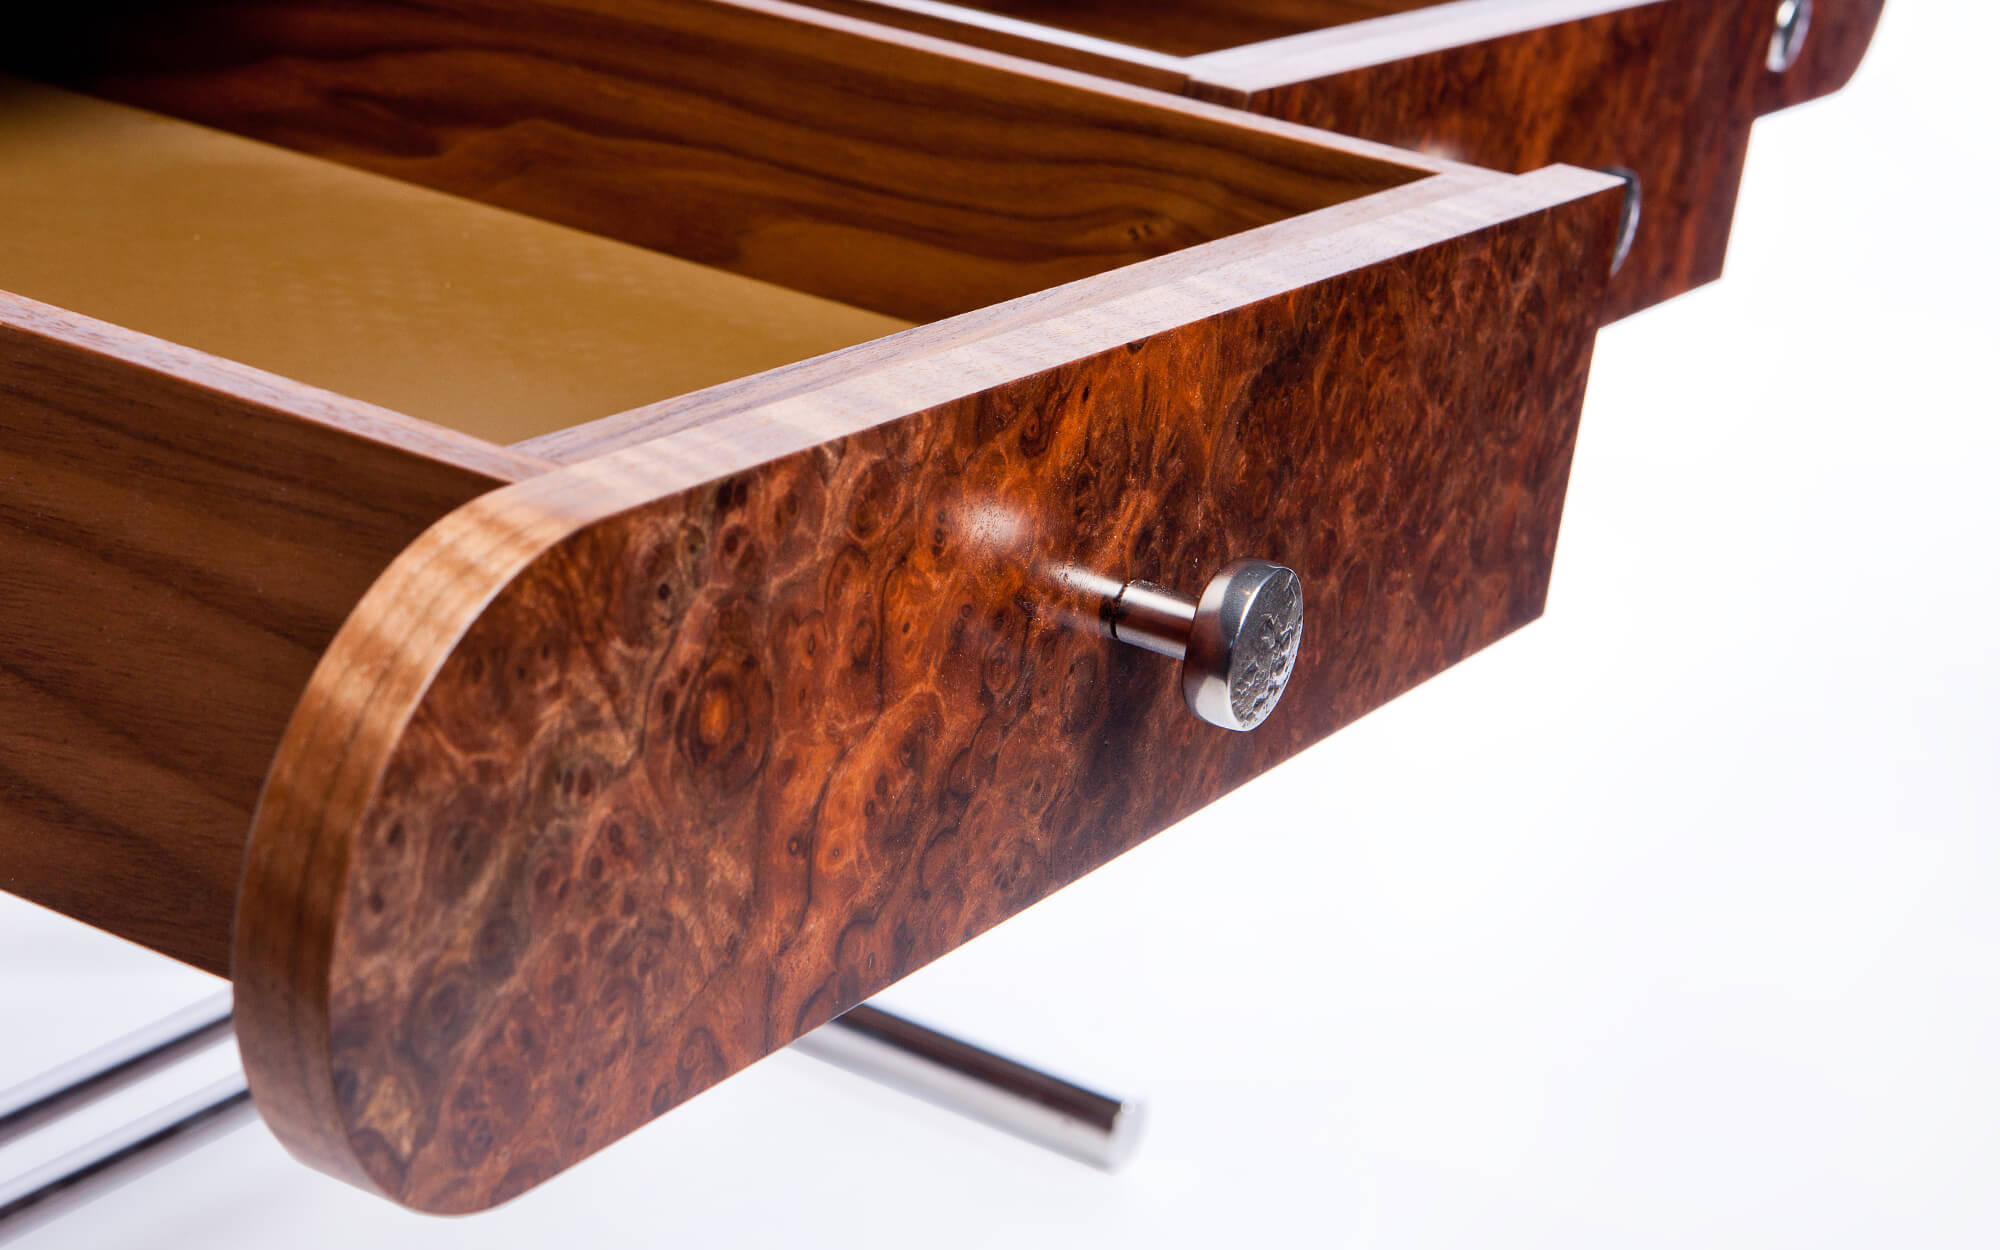 Detail of draws of the luxury Belgravia writing desk by Splinterworks